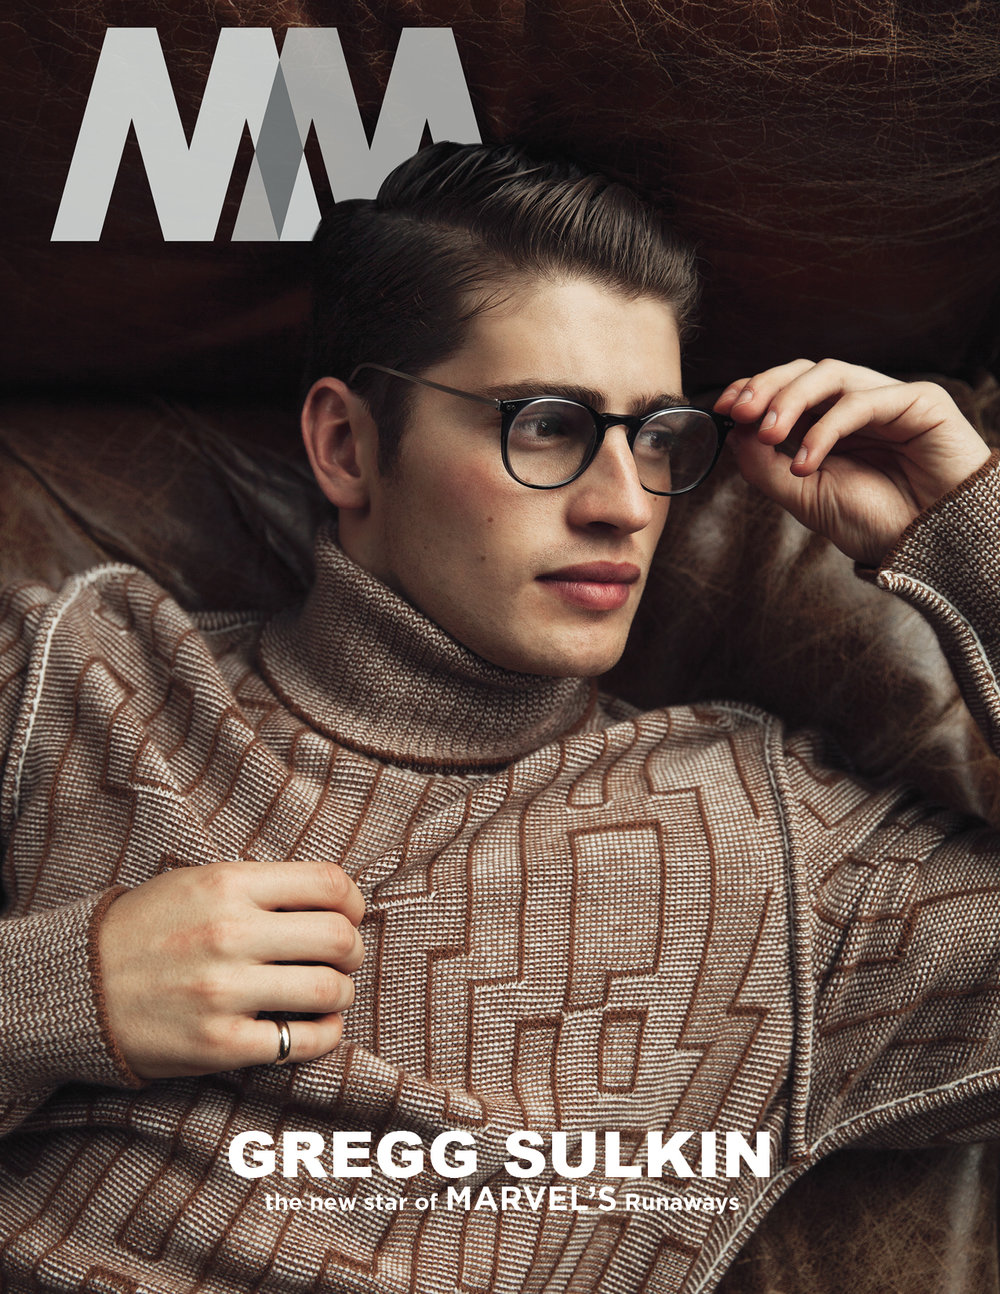 FINAL GREGG SULKIN COVER.jpg